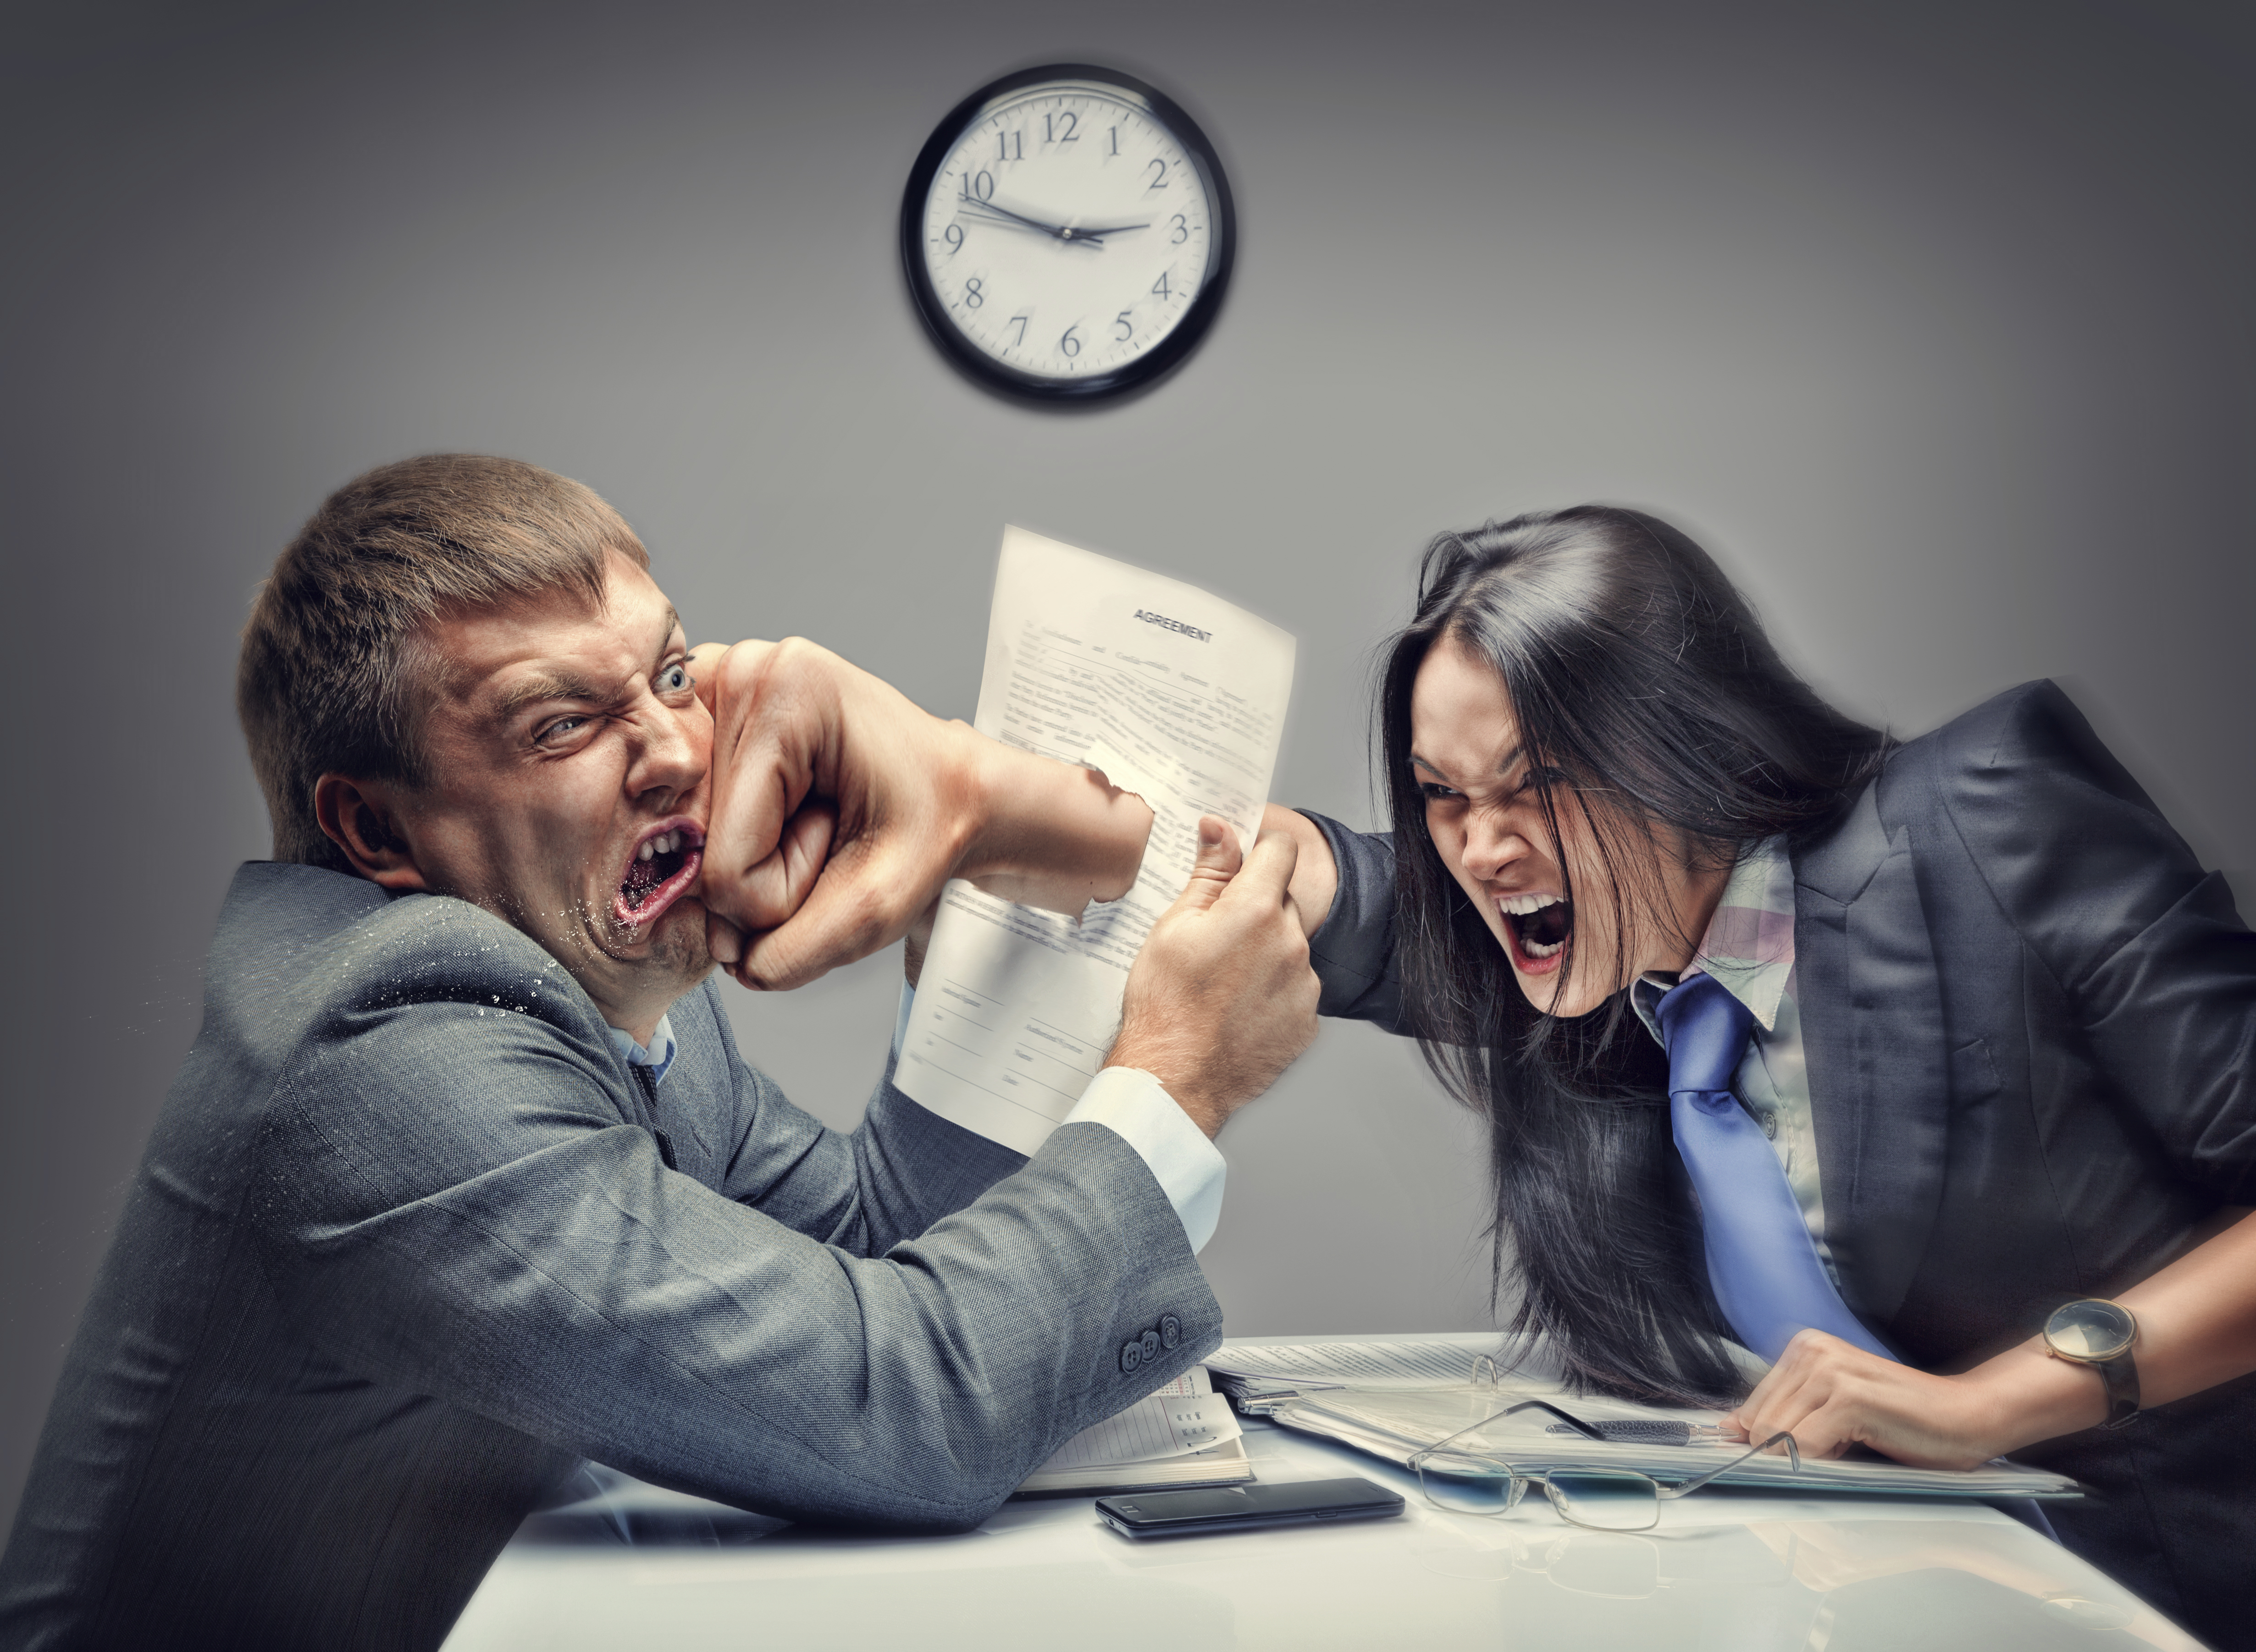 Mad fight of business people